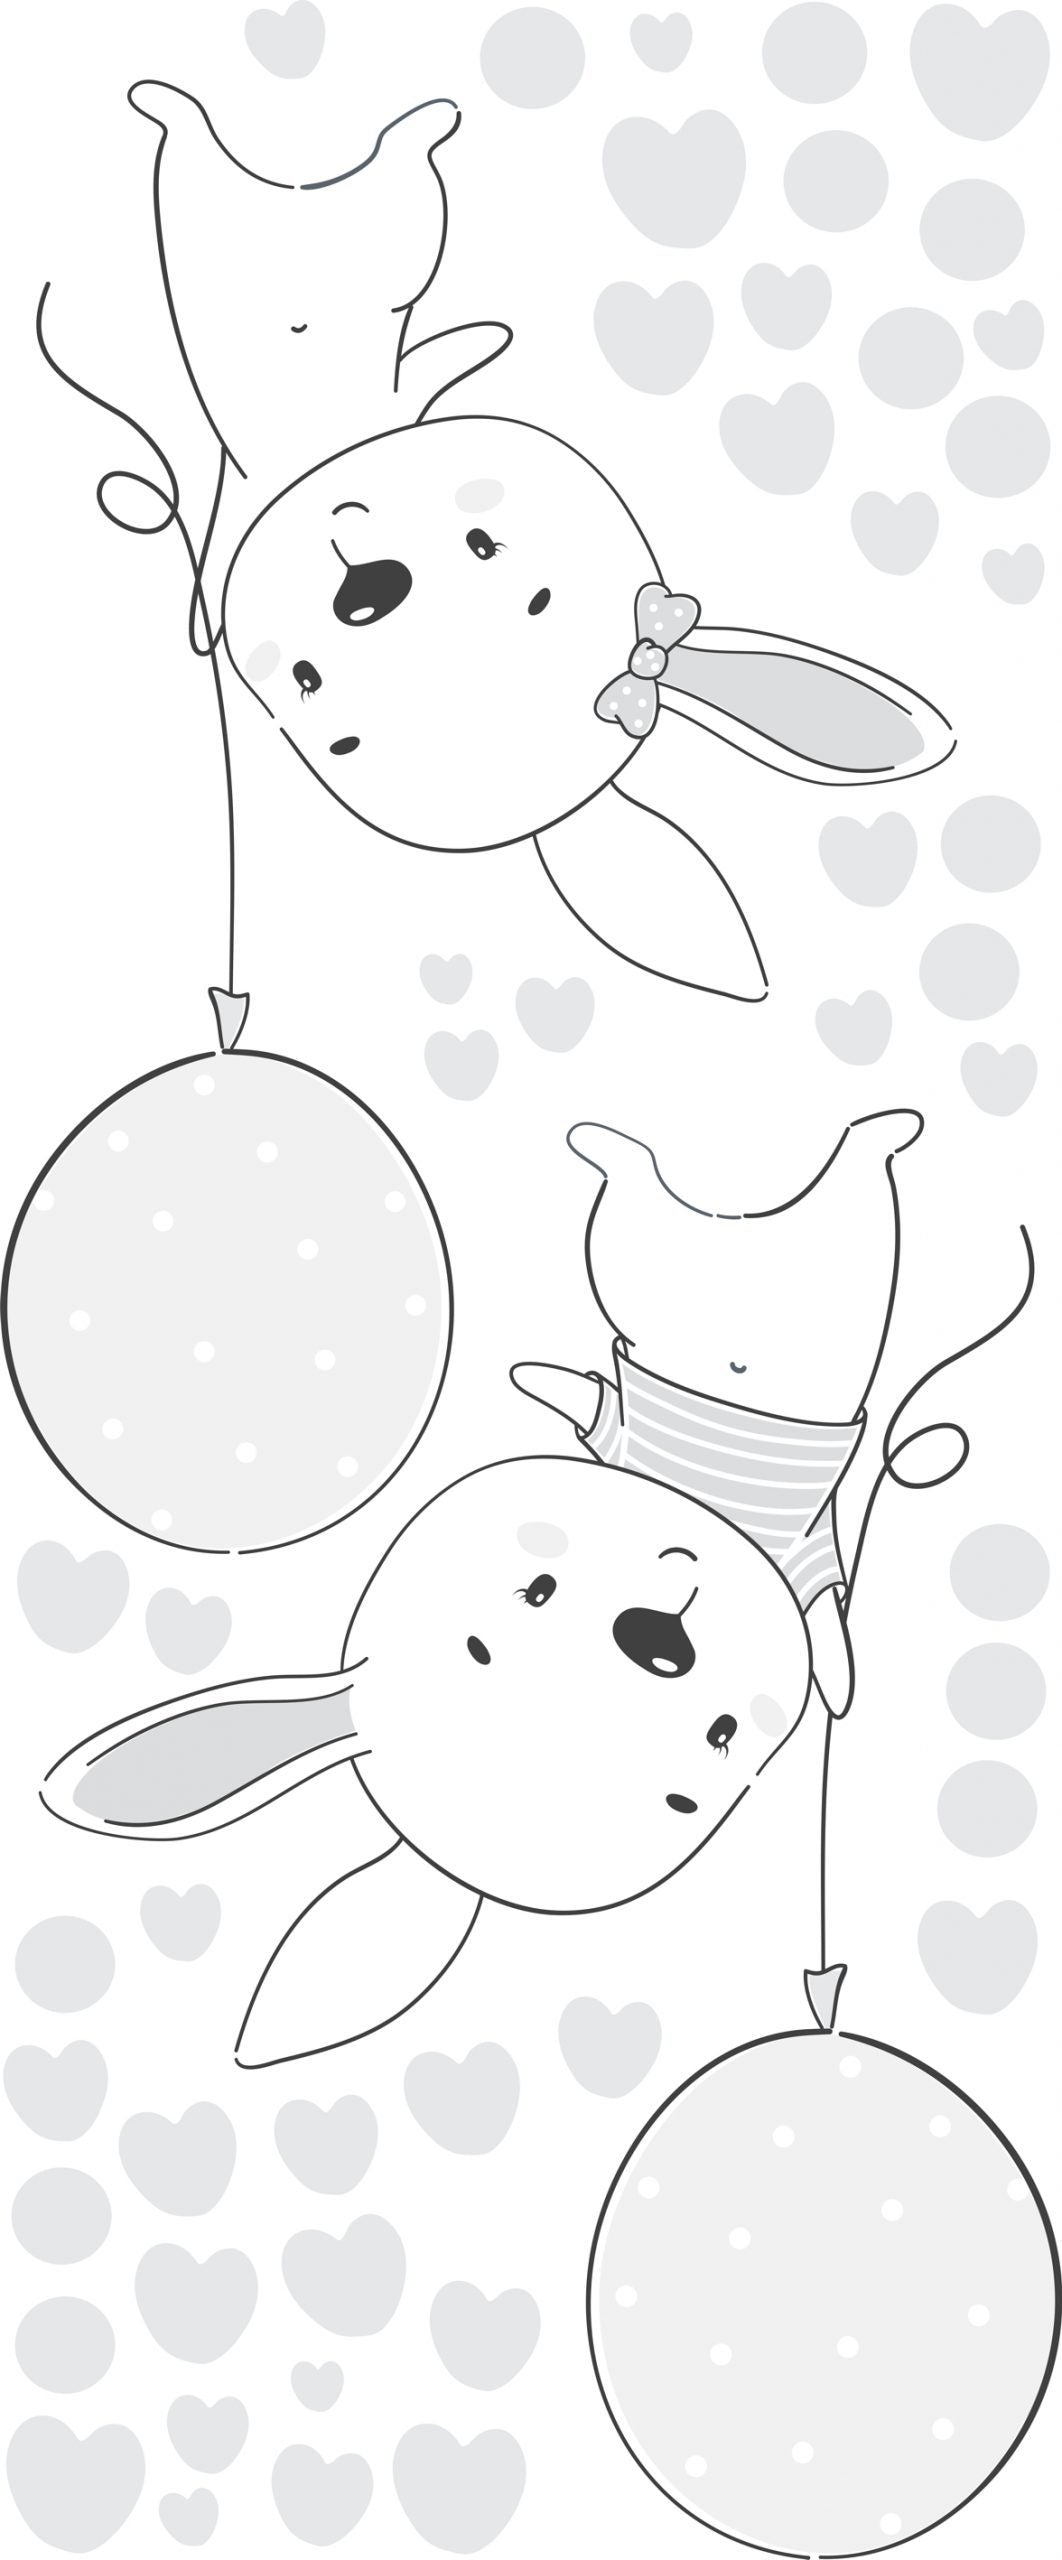 Balloons and Bunnies - Lilly and Bee